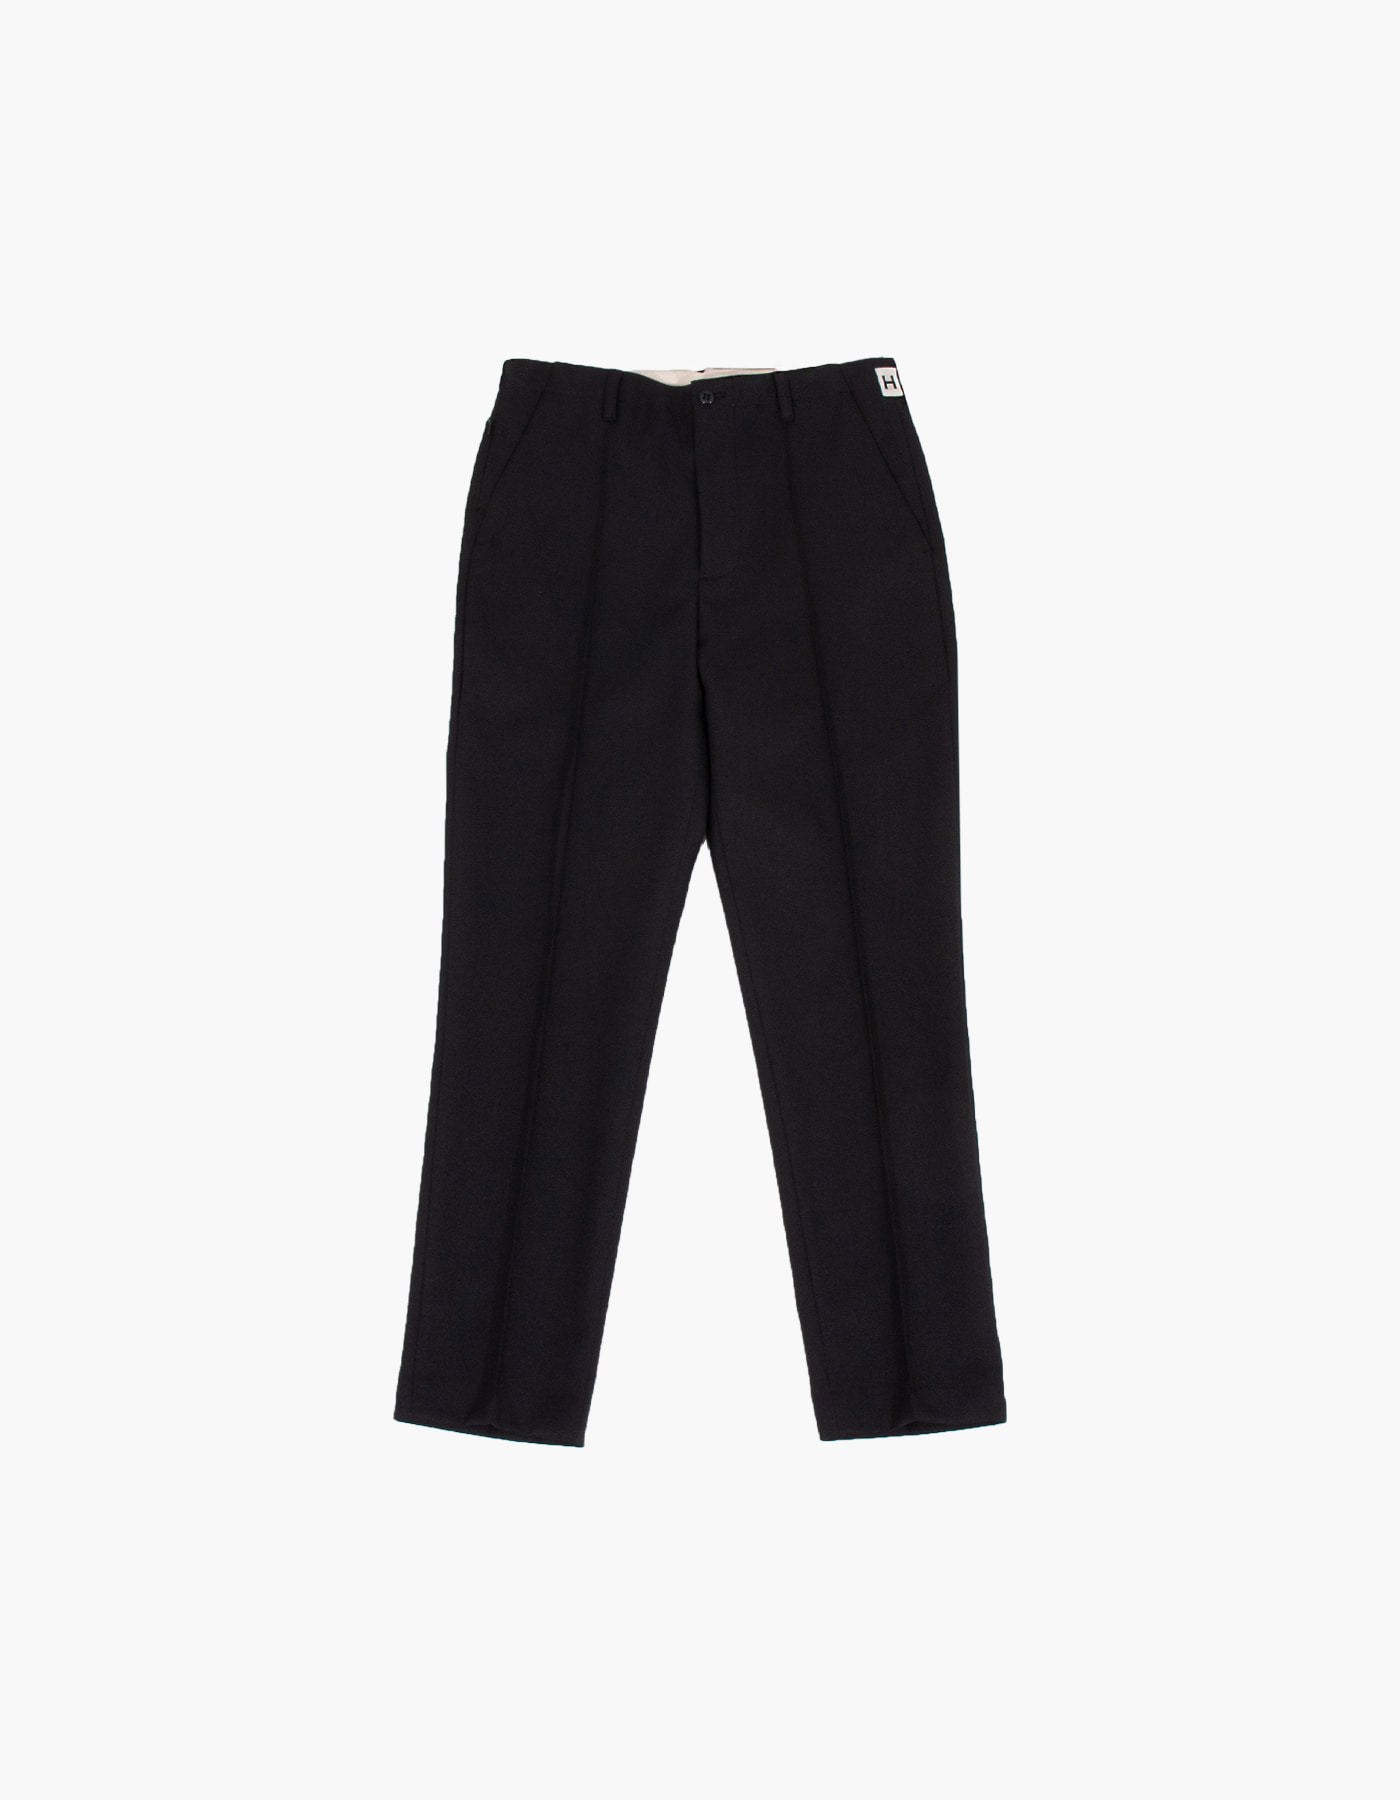 851 PIN TUCK CHINO PANTS / BLACK